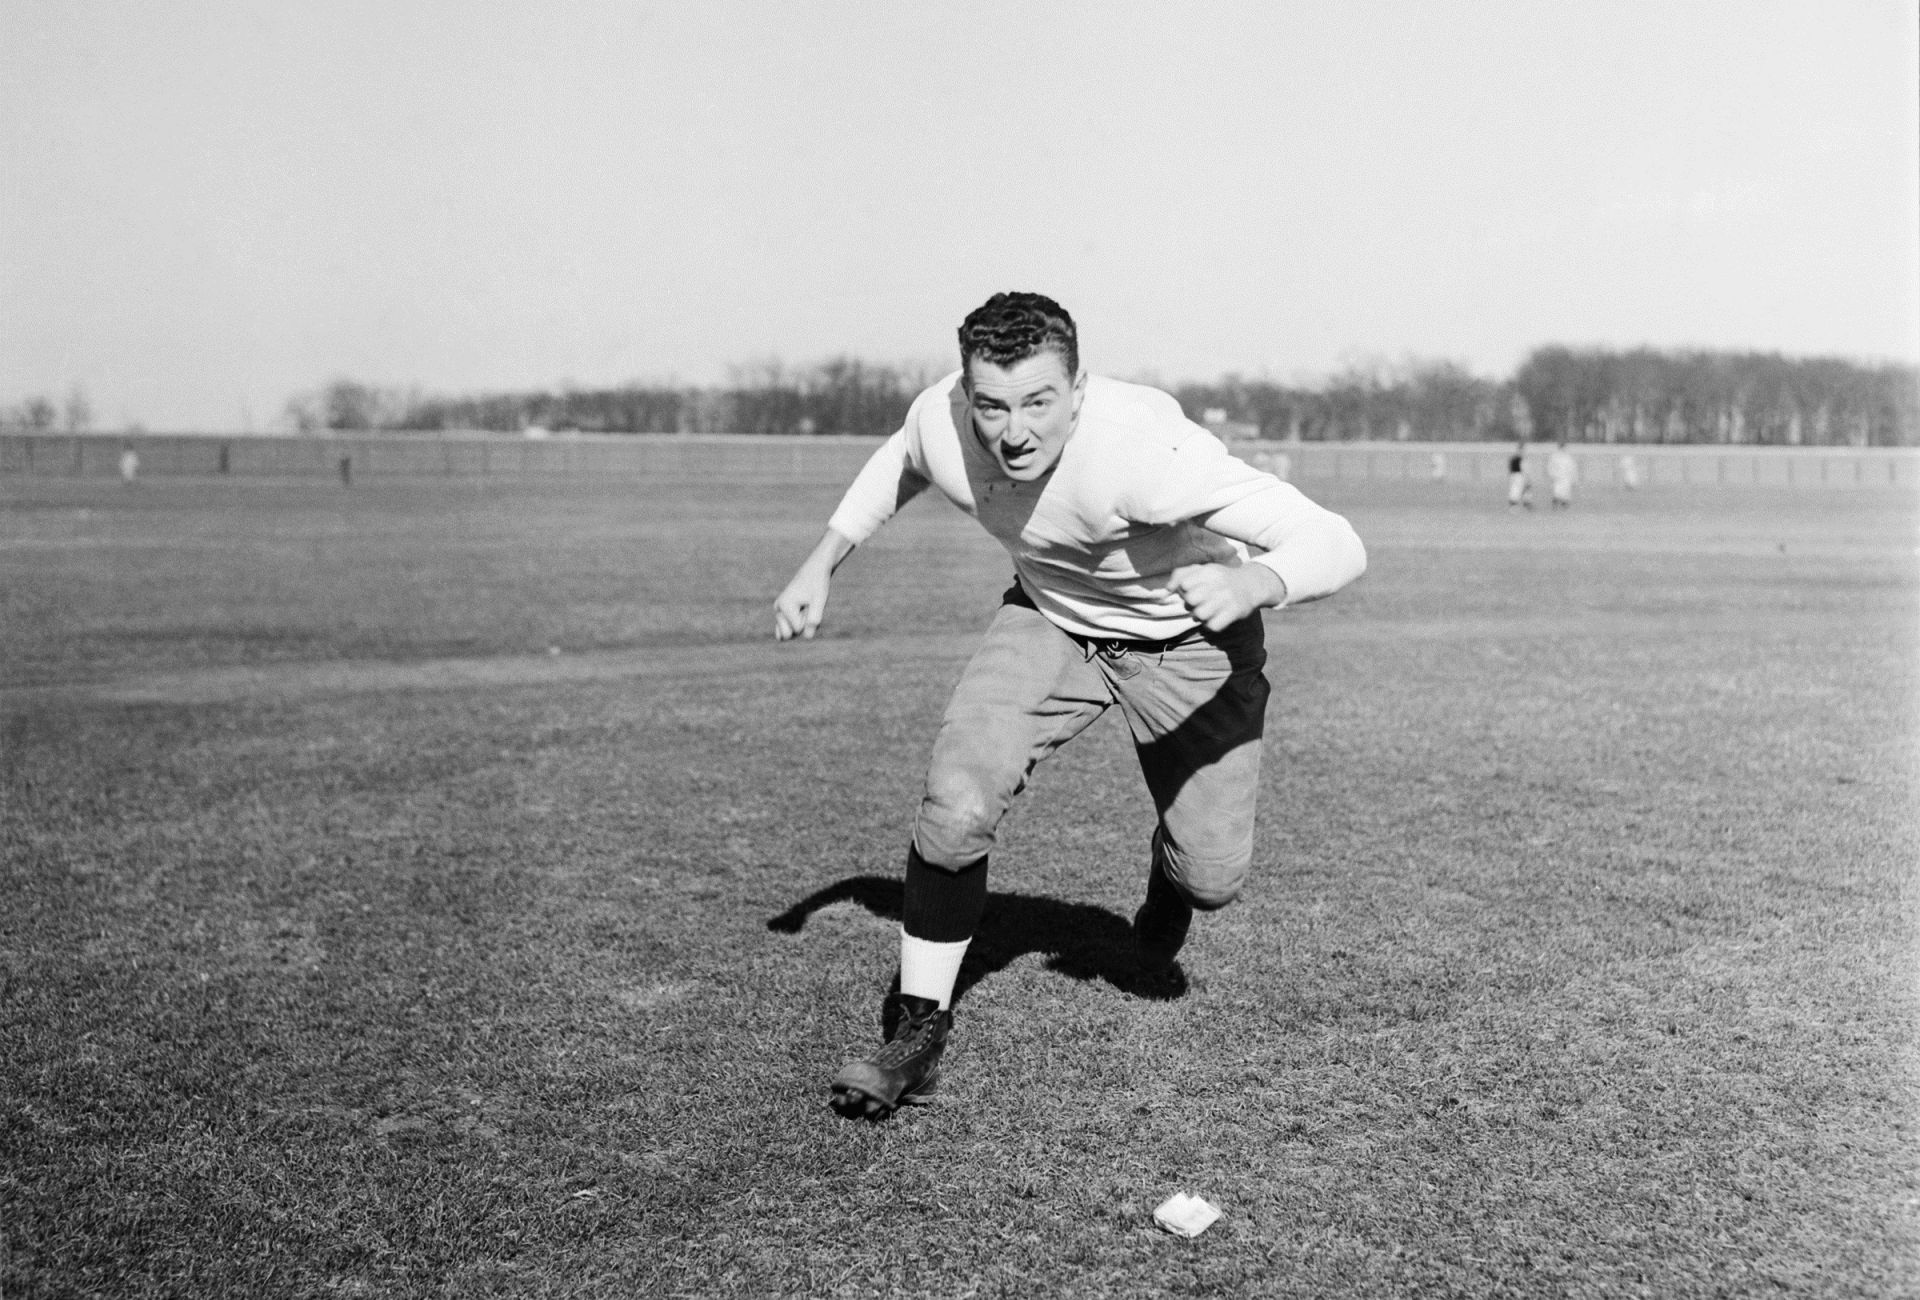 John McIntyre in a publicity photo on the fields of the University of Notre Dame